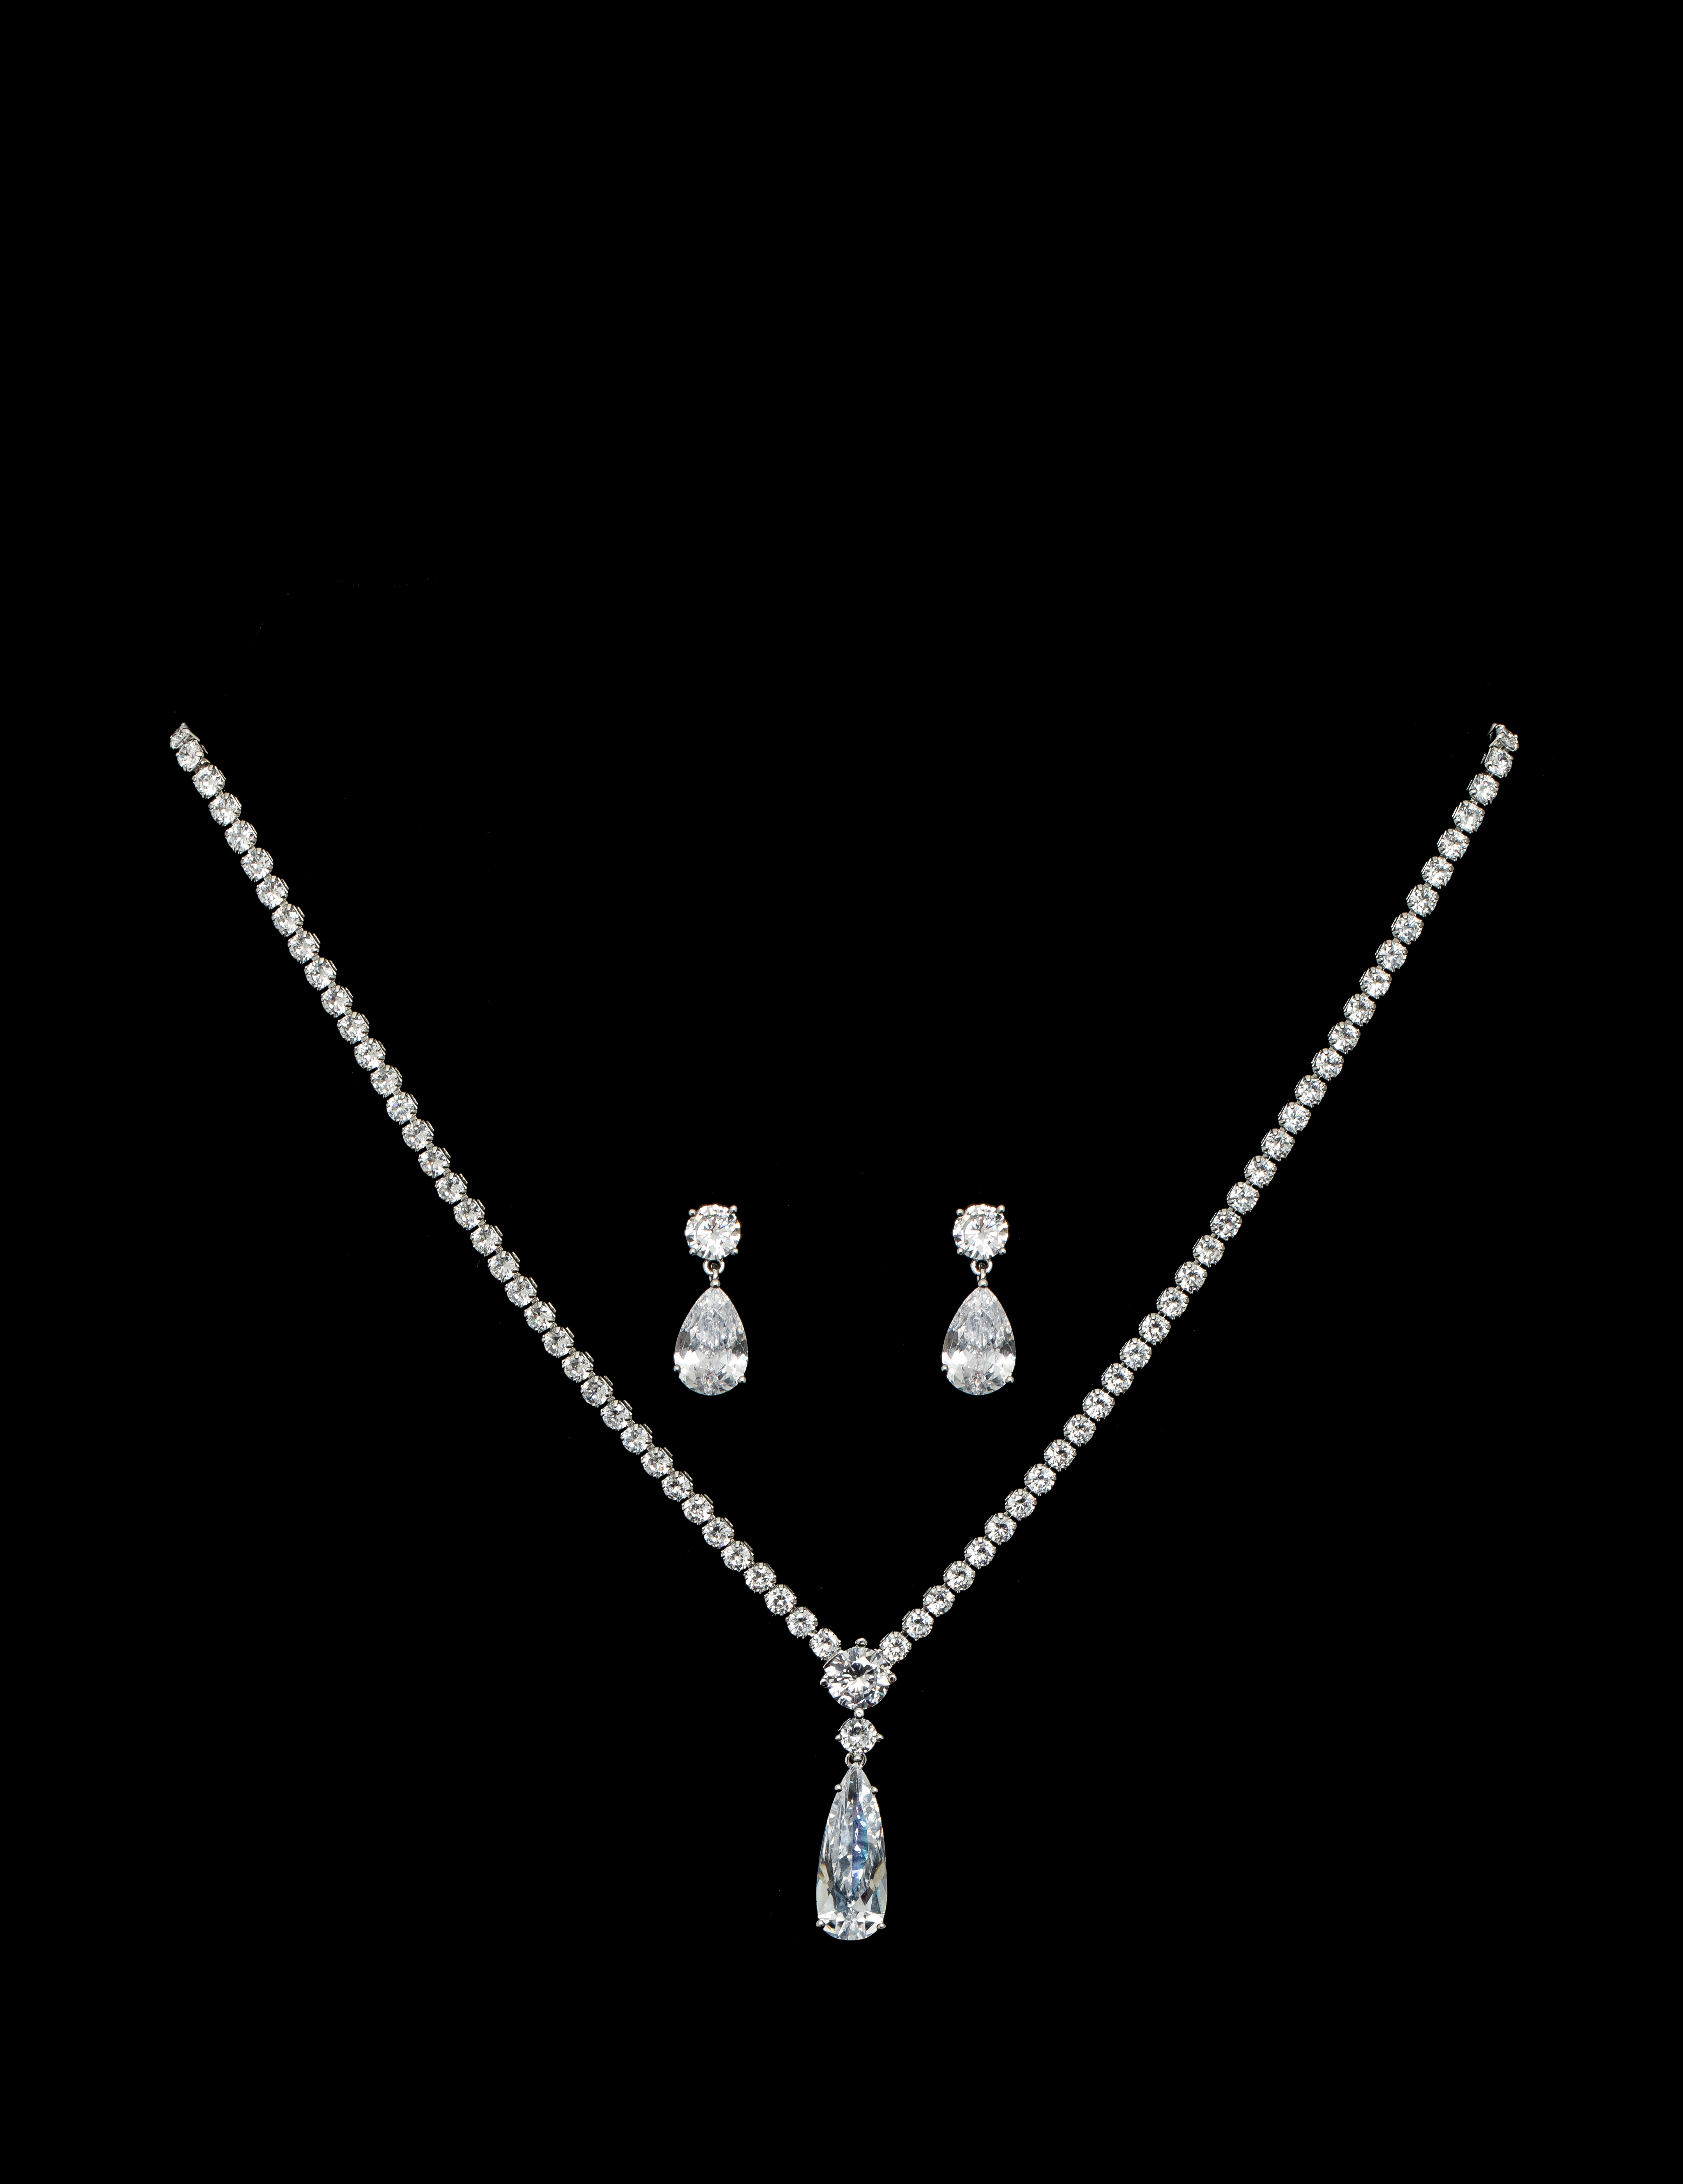 Bridal Classics Necklace Sets CZ-864